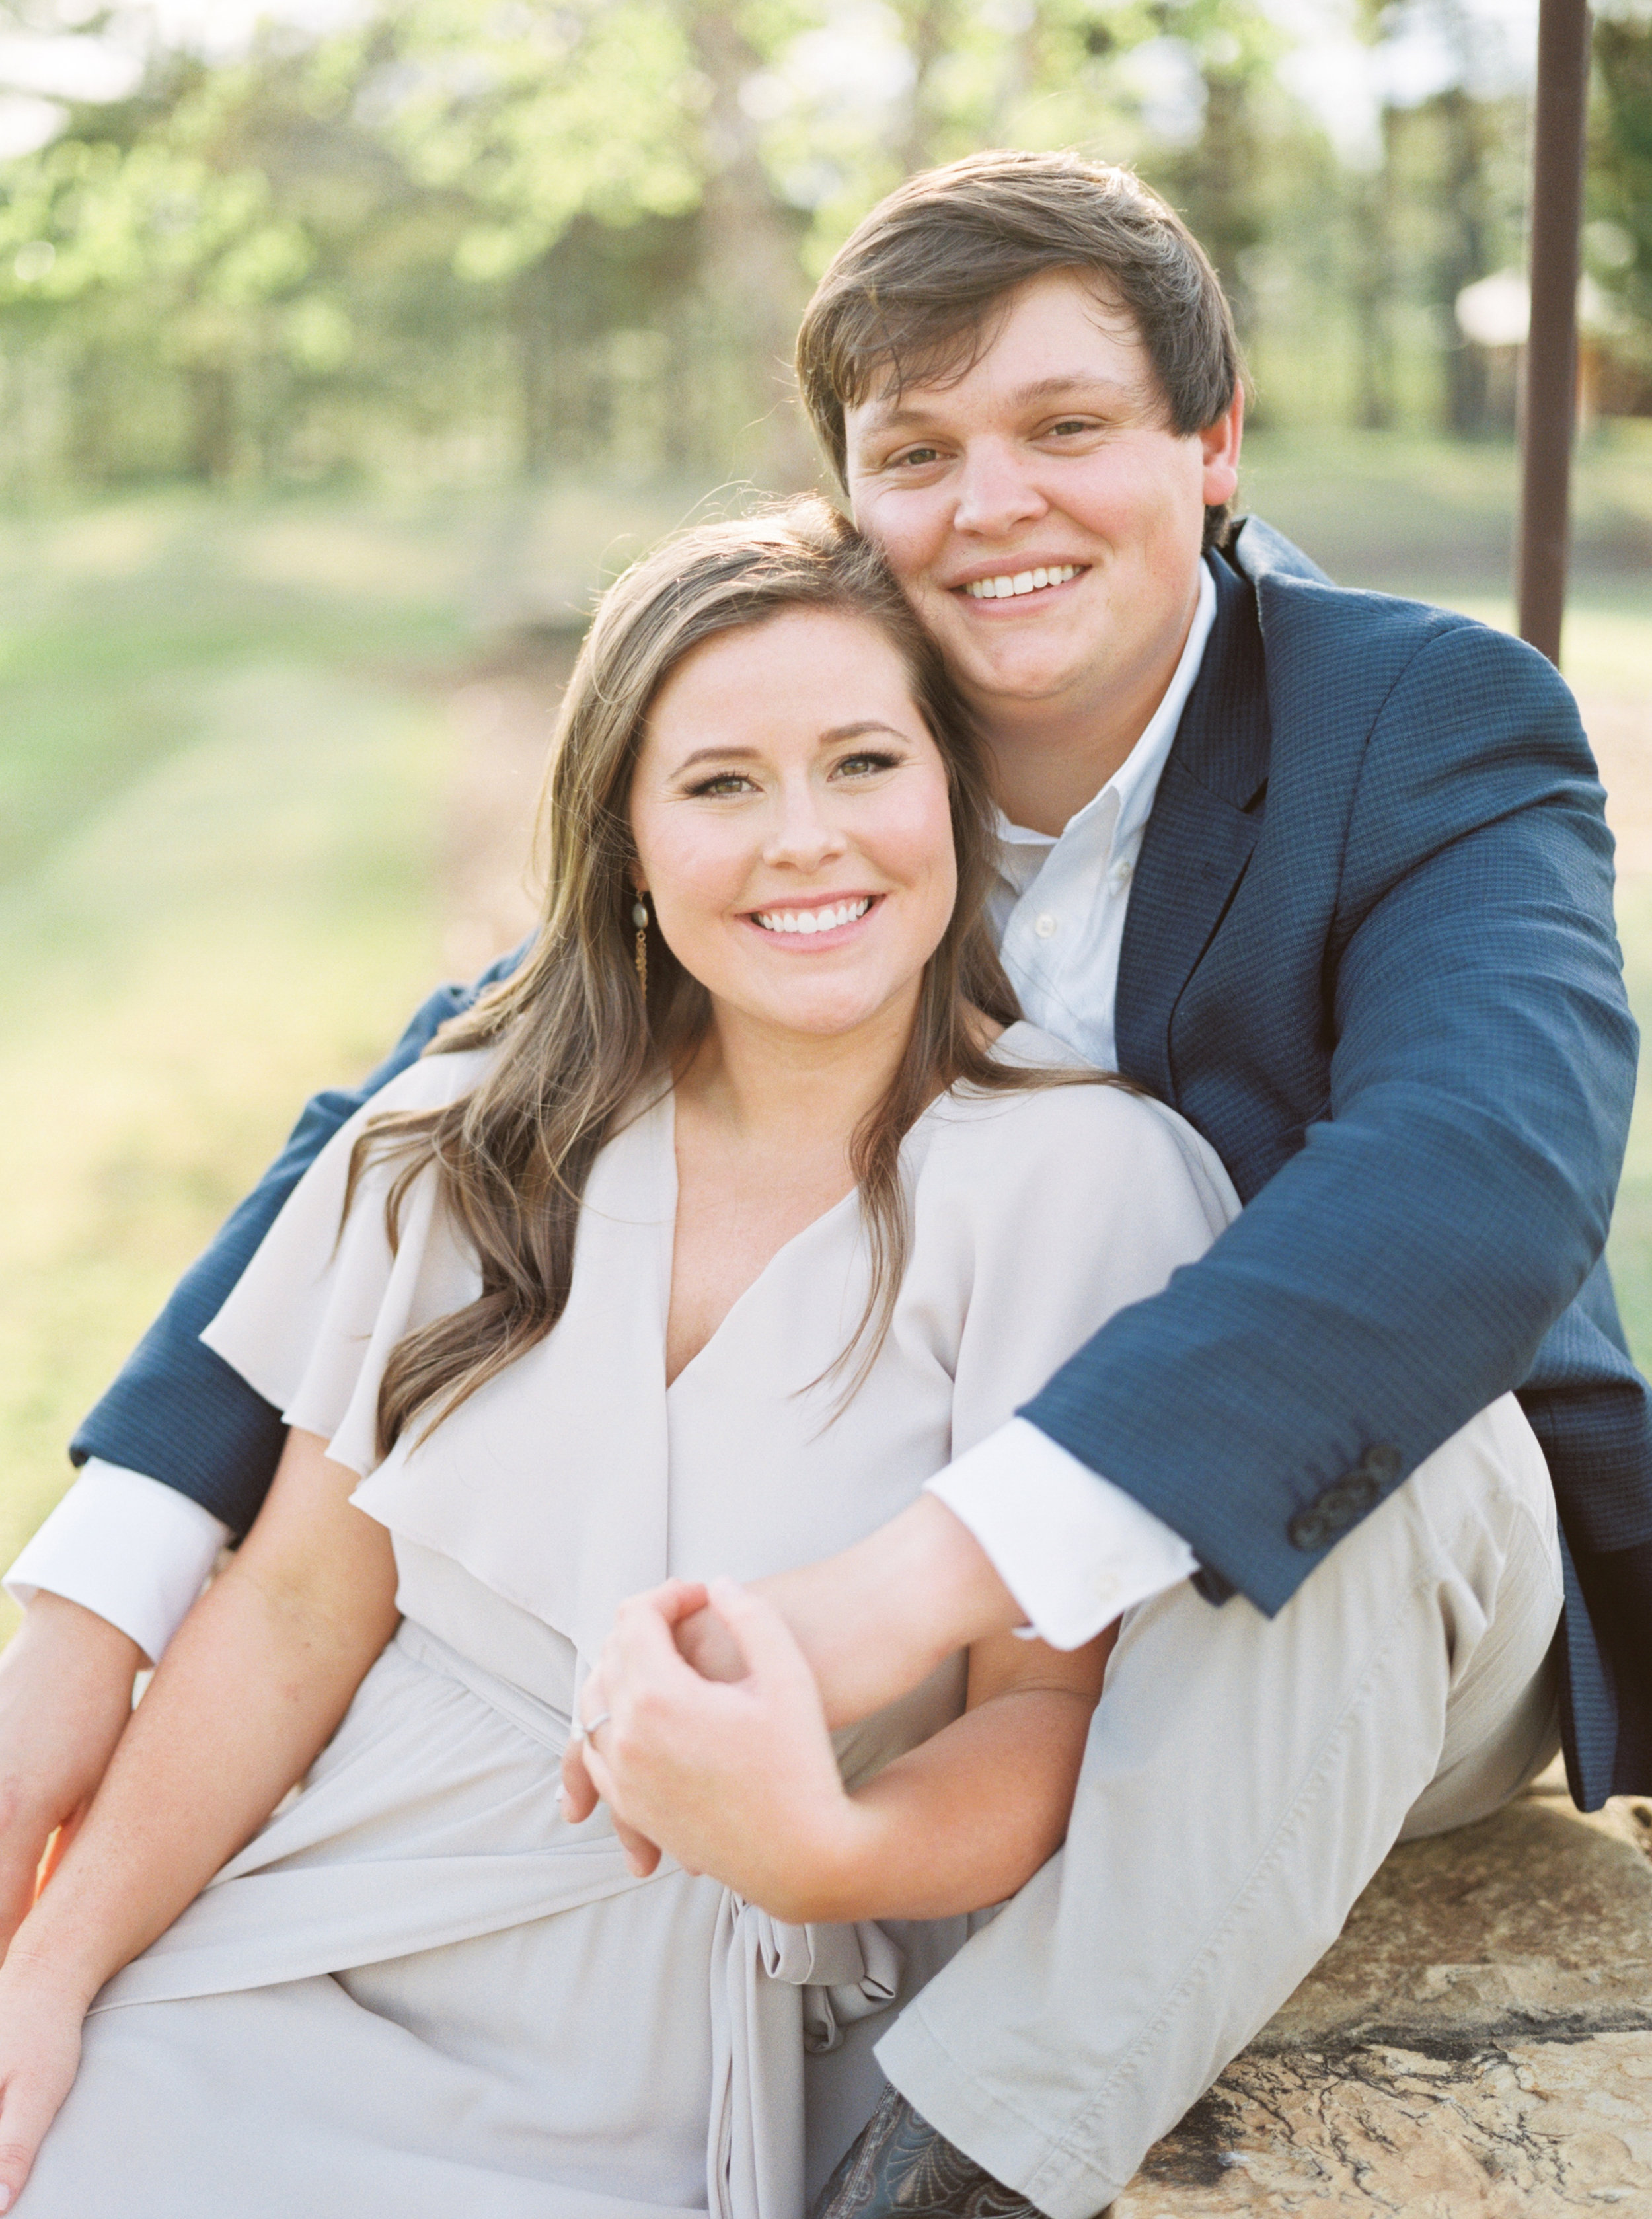 Landon_Grant_Carter_Film_Engagement_Session_Lake_Fallen_Photography_Columbus_Georgia-32.JPG